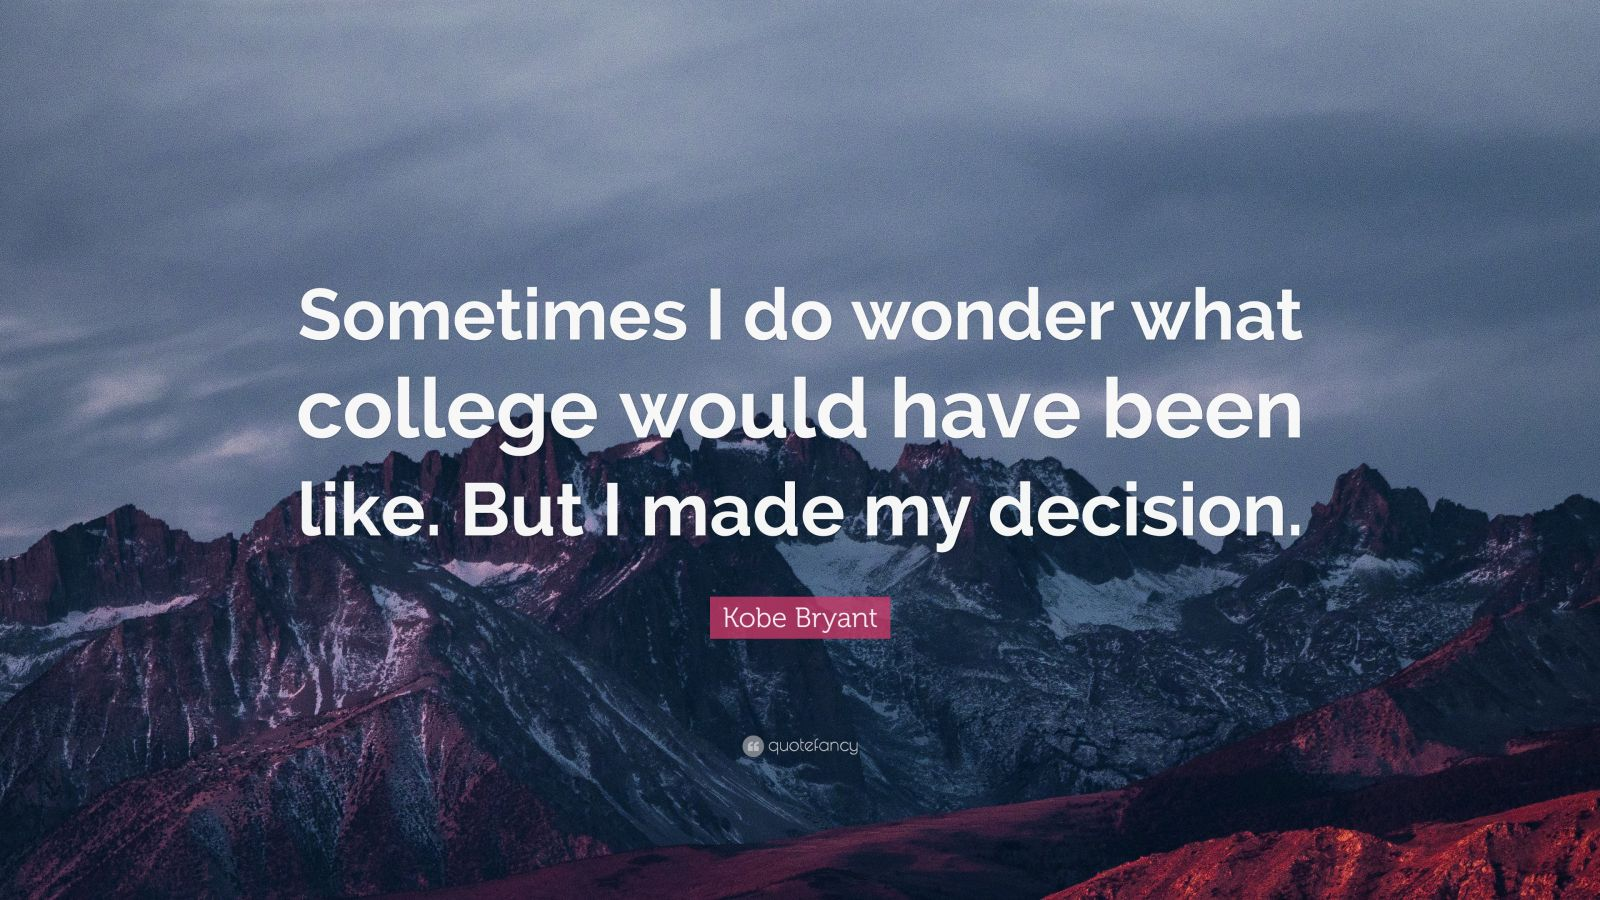 """Kobe Bryant Quote: """"Sometimes I do wonder what college would have been like. But I made my decision."""""""